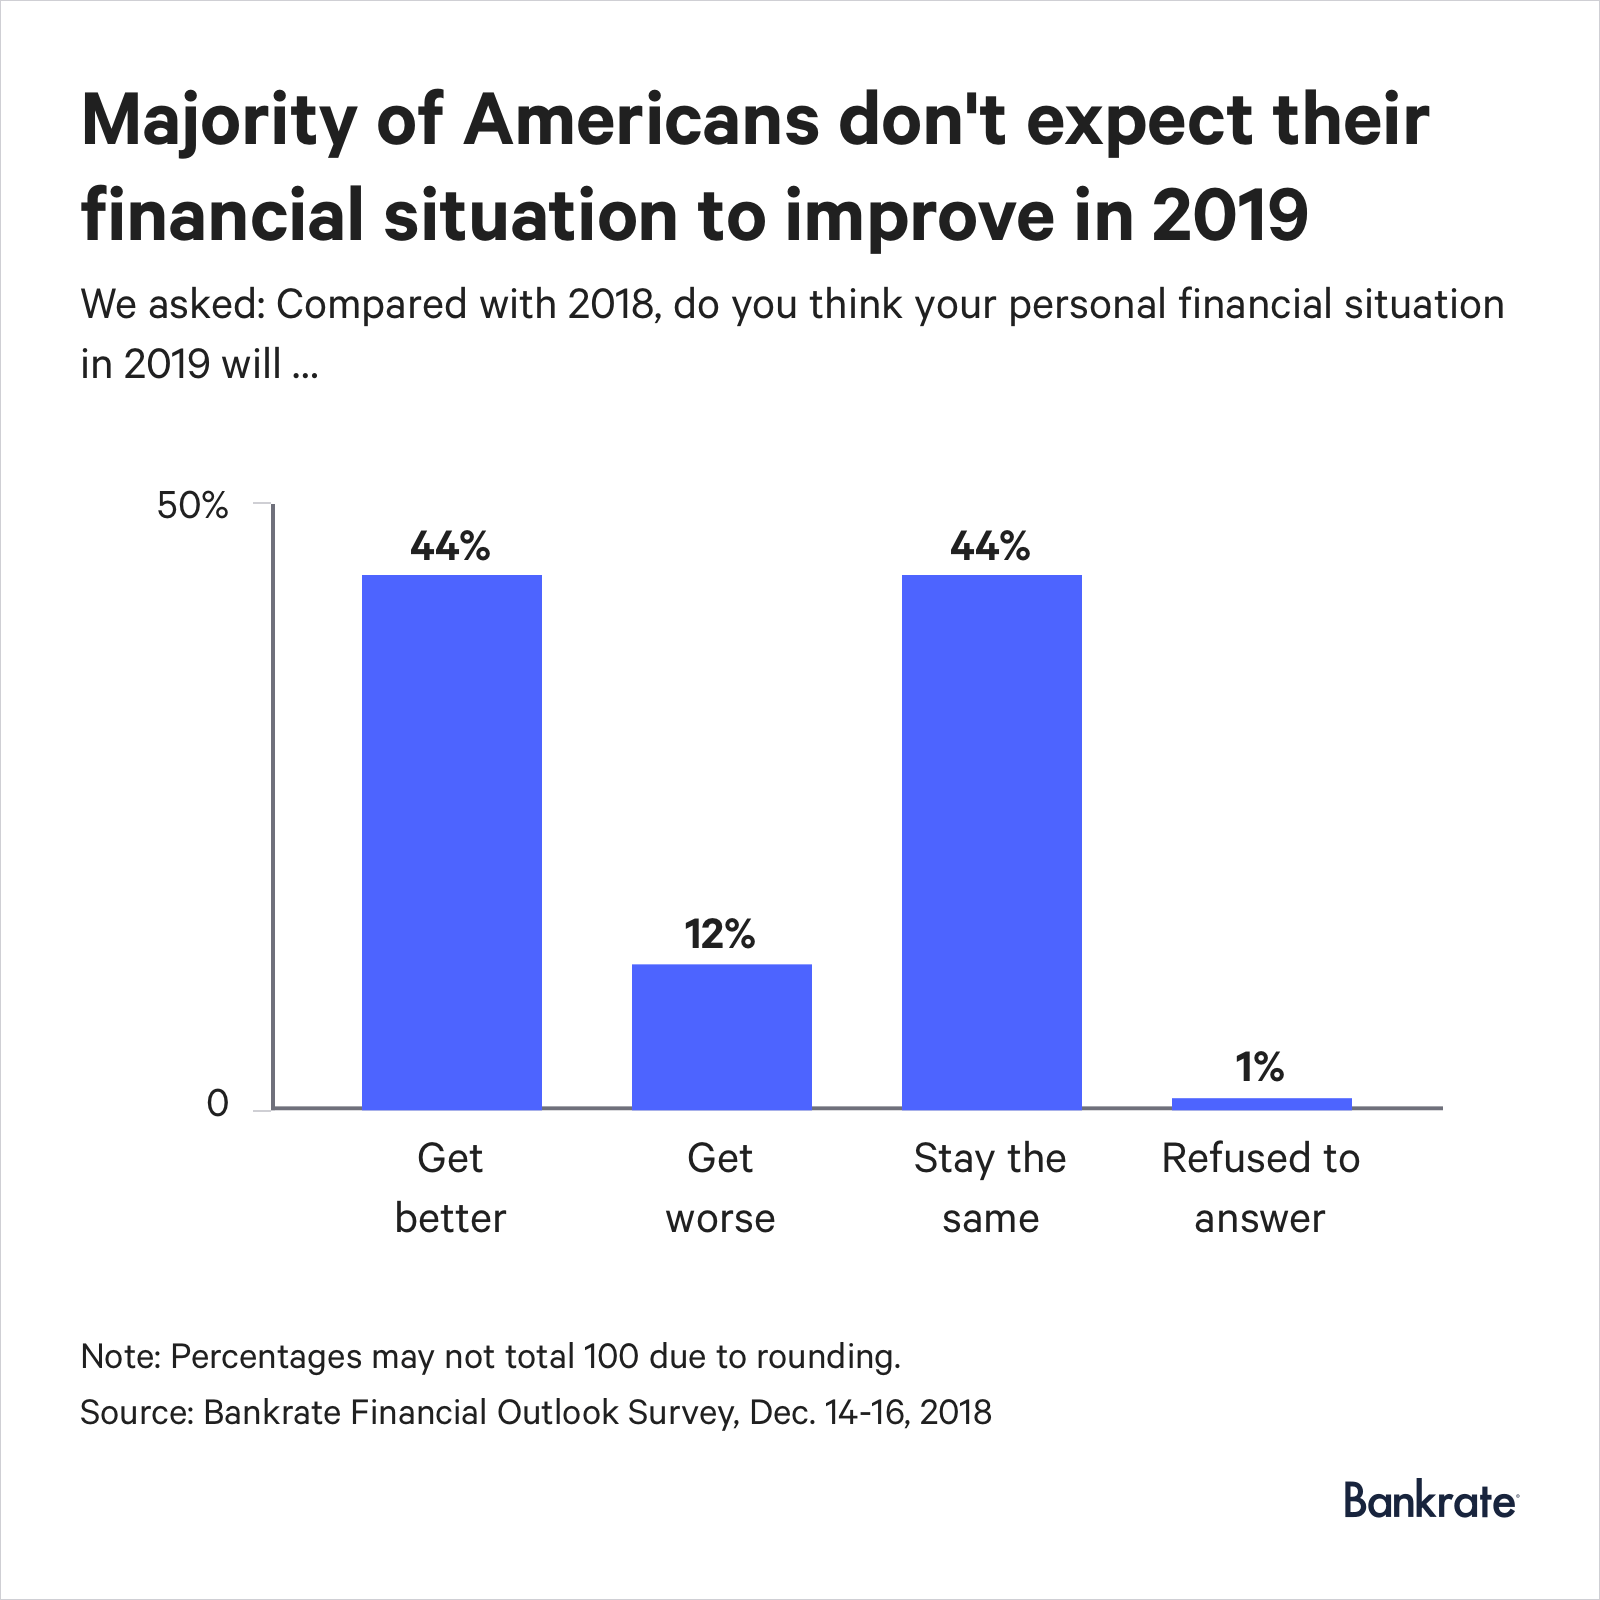 Graph: 44% of Americans expect their finances to get better